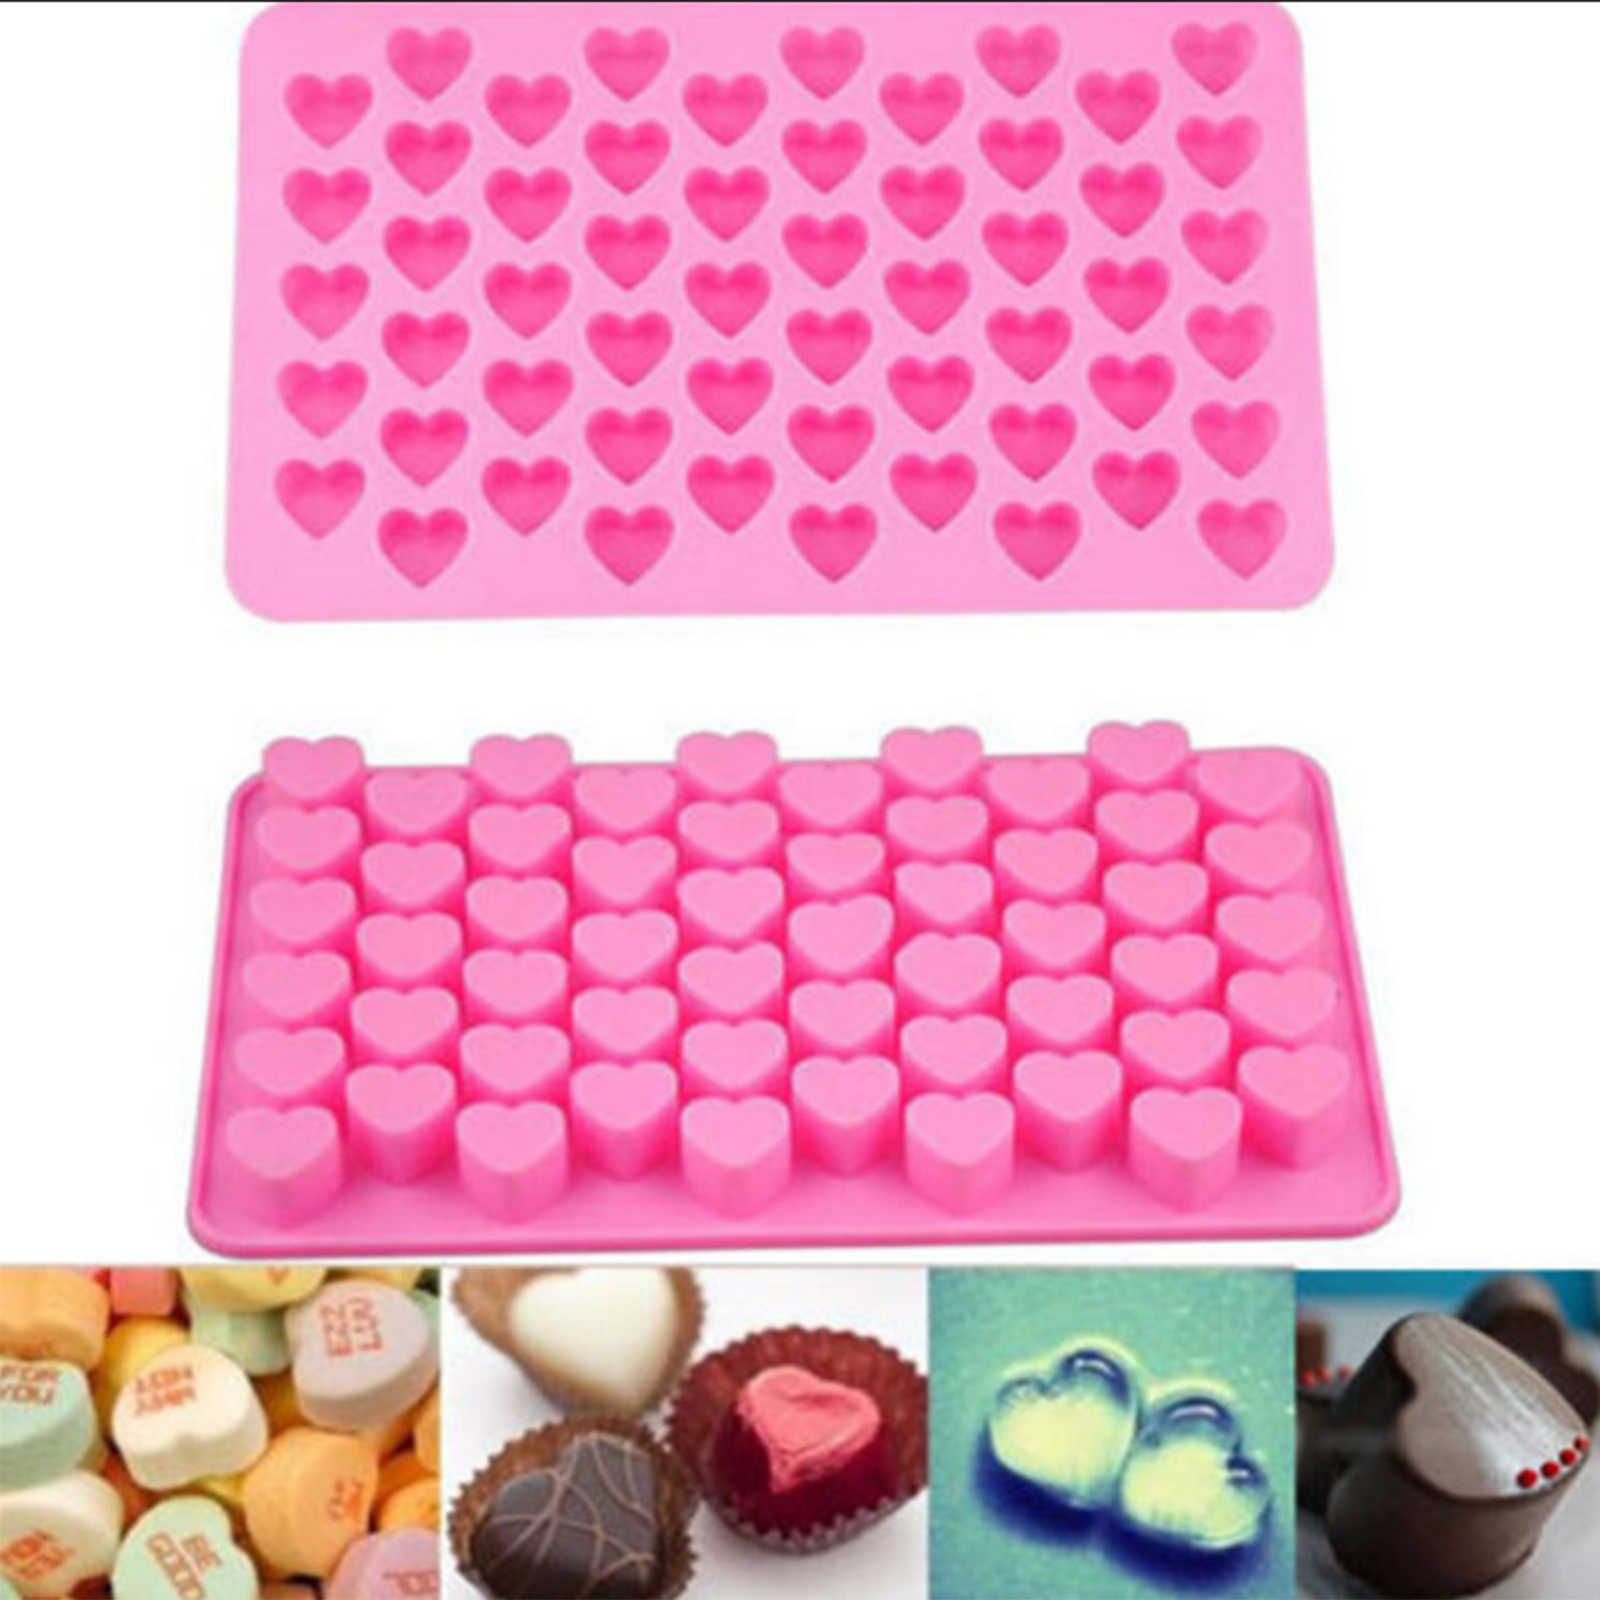 Ice Tray Cute Mini Heart Shape Silicone Ice Cube Chocolate Baking Candy Soap Mold making cake bread mousse jelly chocolate